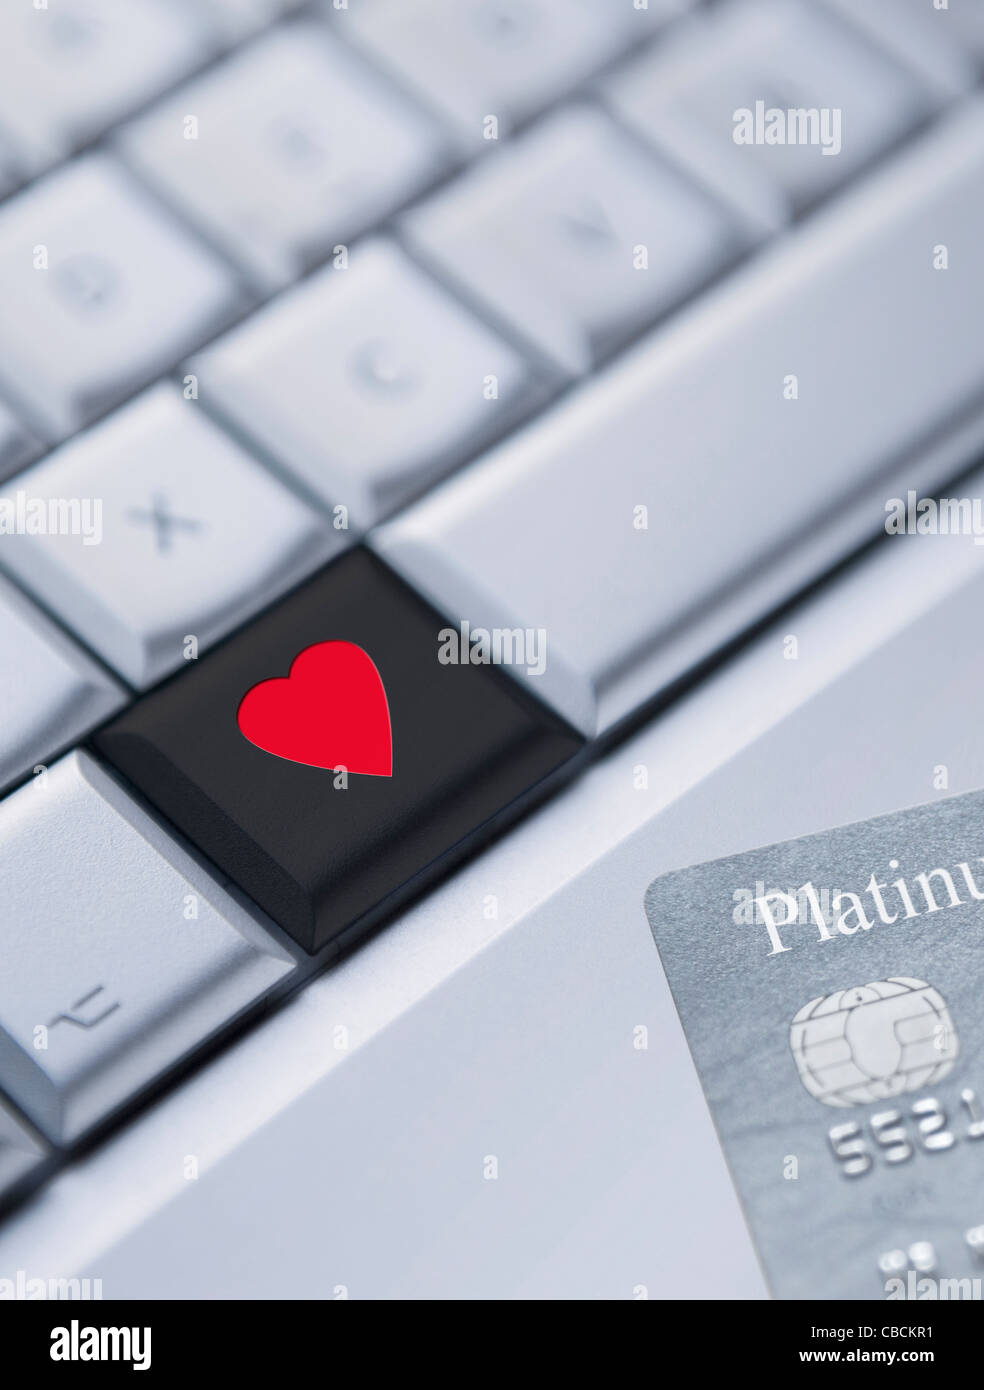 Internet Dating Finding Love Online Computer Keyboard With Heart